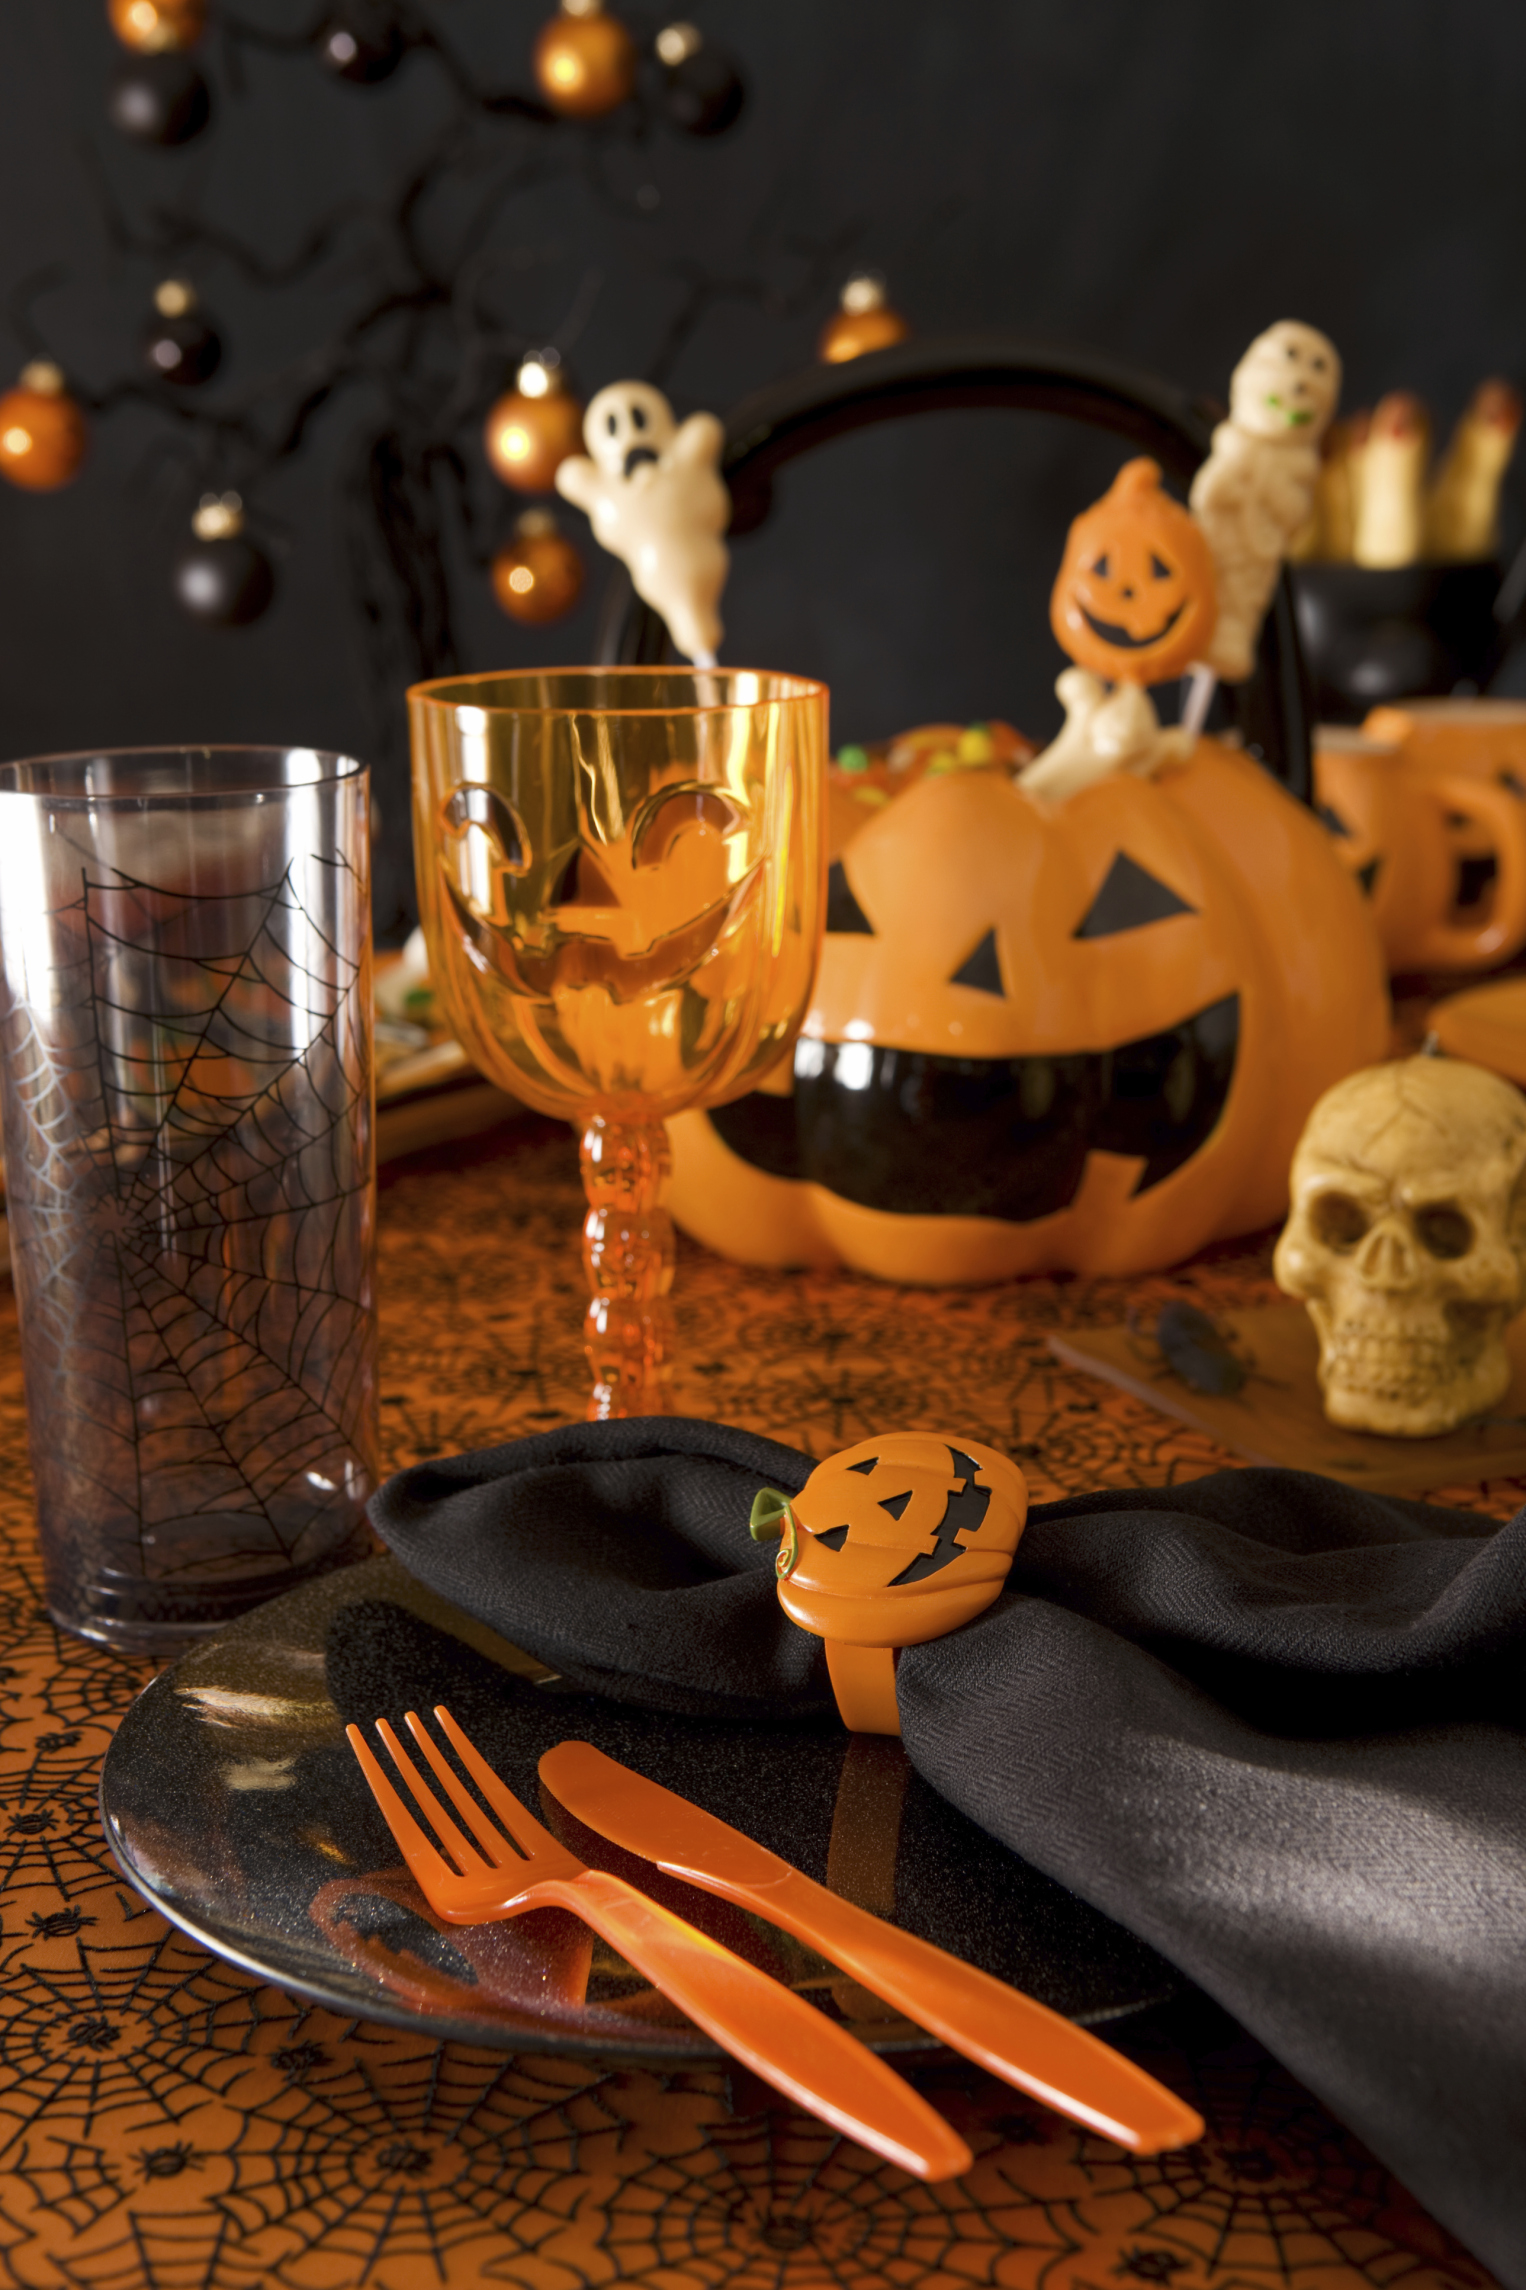 Easy Scary Halloween Table Settings